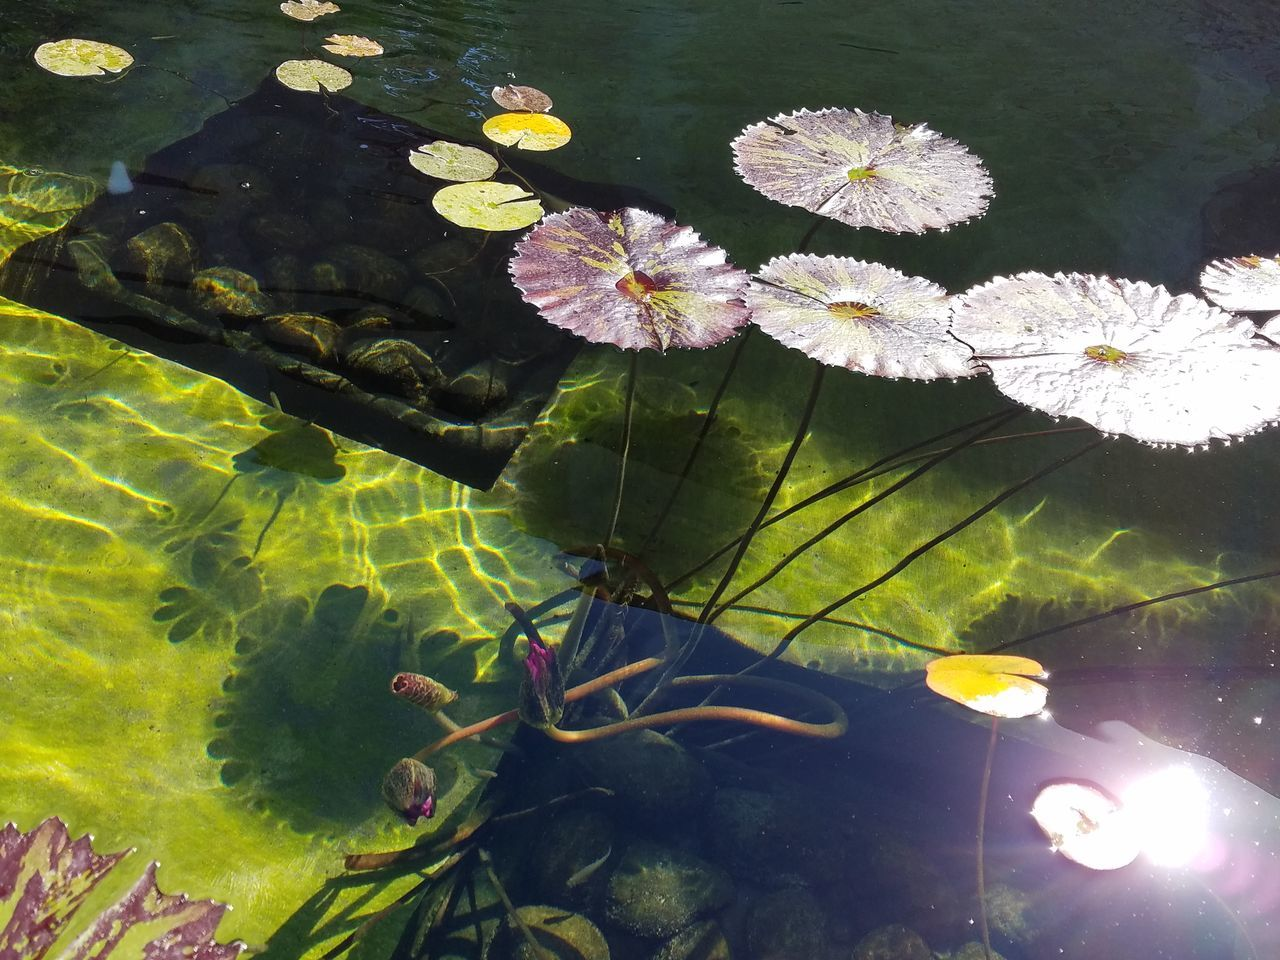 The Purist (no Edit, No Filter) Lily Pad Fragility Beauty In Nature Floating On Water Natural Pattern Natural Color Fine Art Photography Nature_collection Patterns & Textures Check This Out Meditation Zen Still Life Photography Water Plant Vibrant Color Nature Fountain Multi Colored Droplets